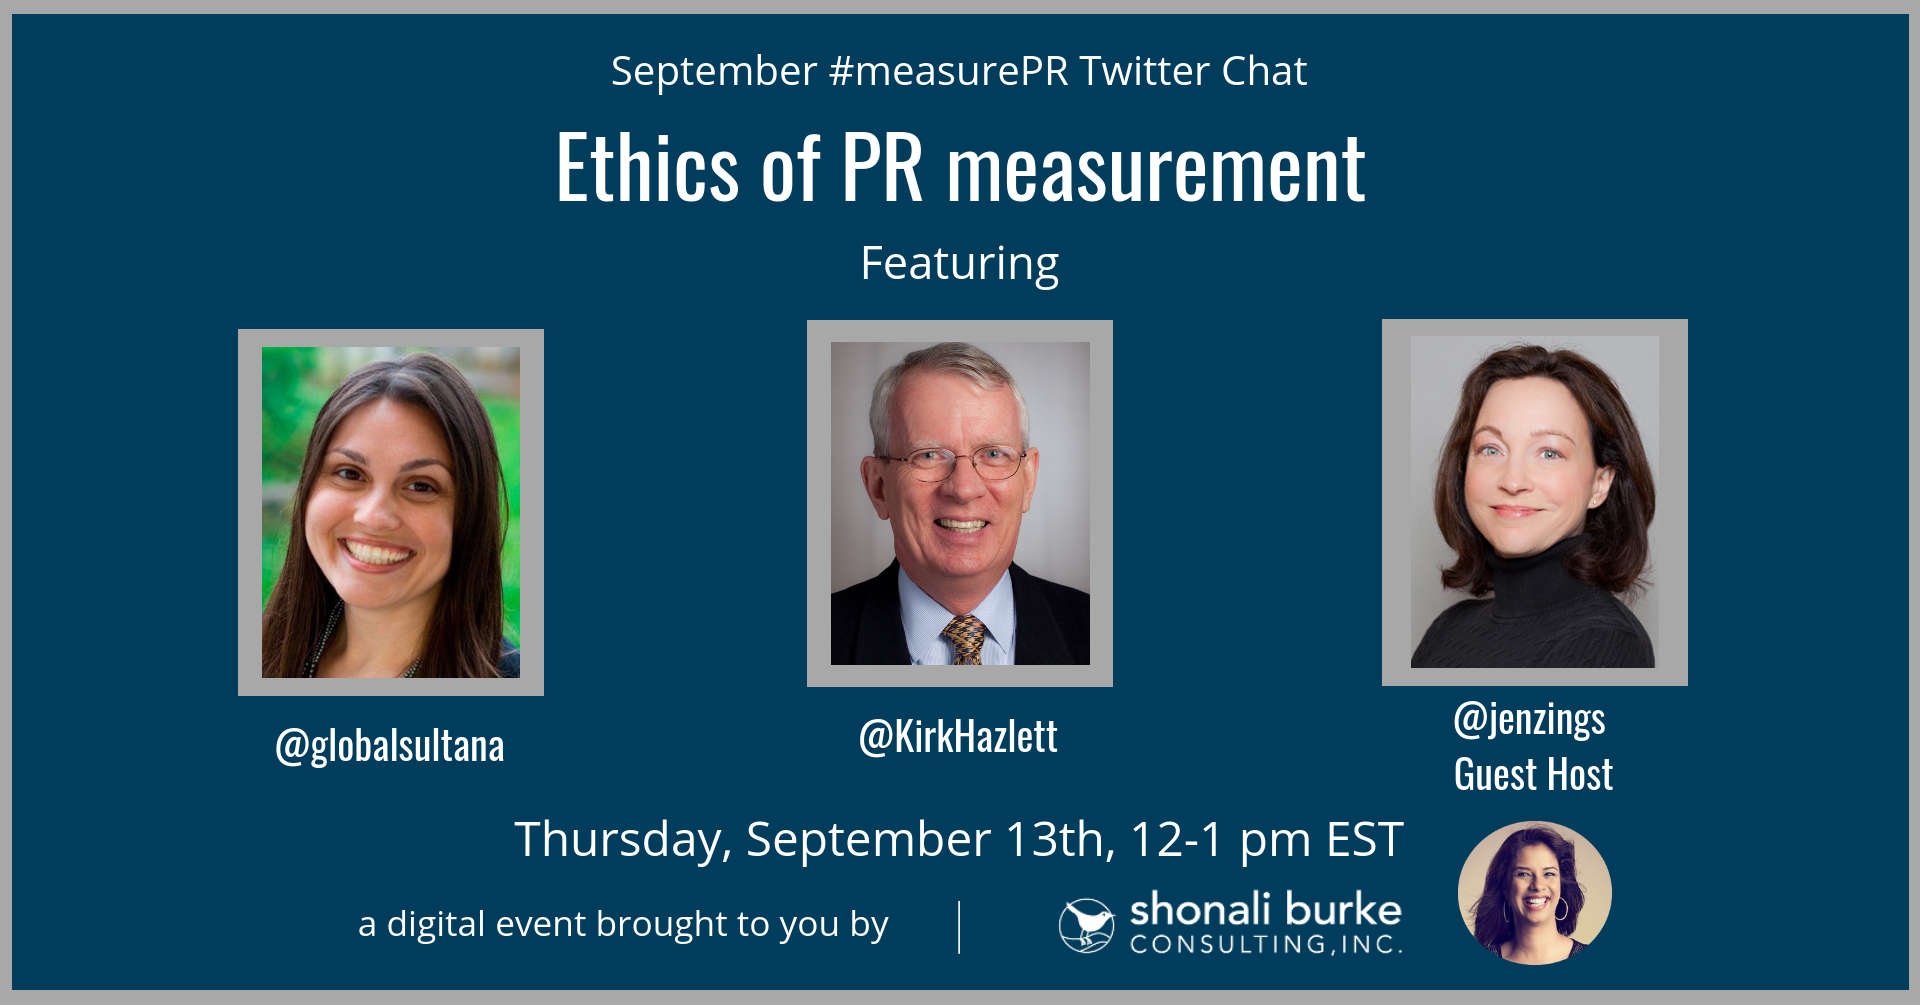 #measurePR Recap (September 2018): Ethics of PR Measurement